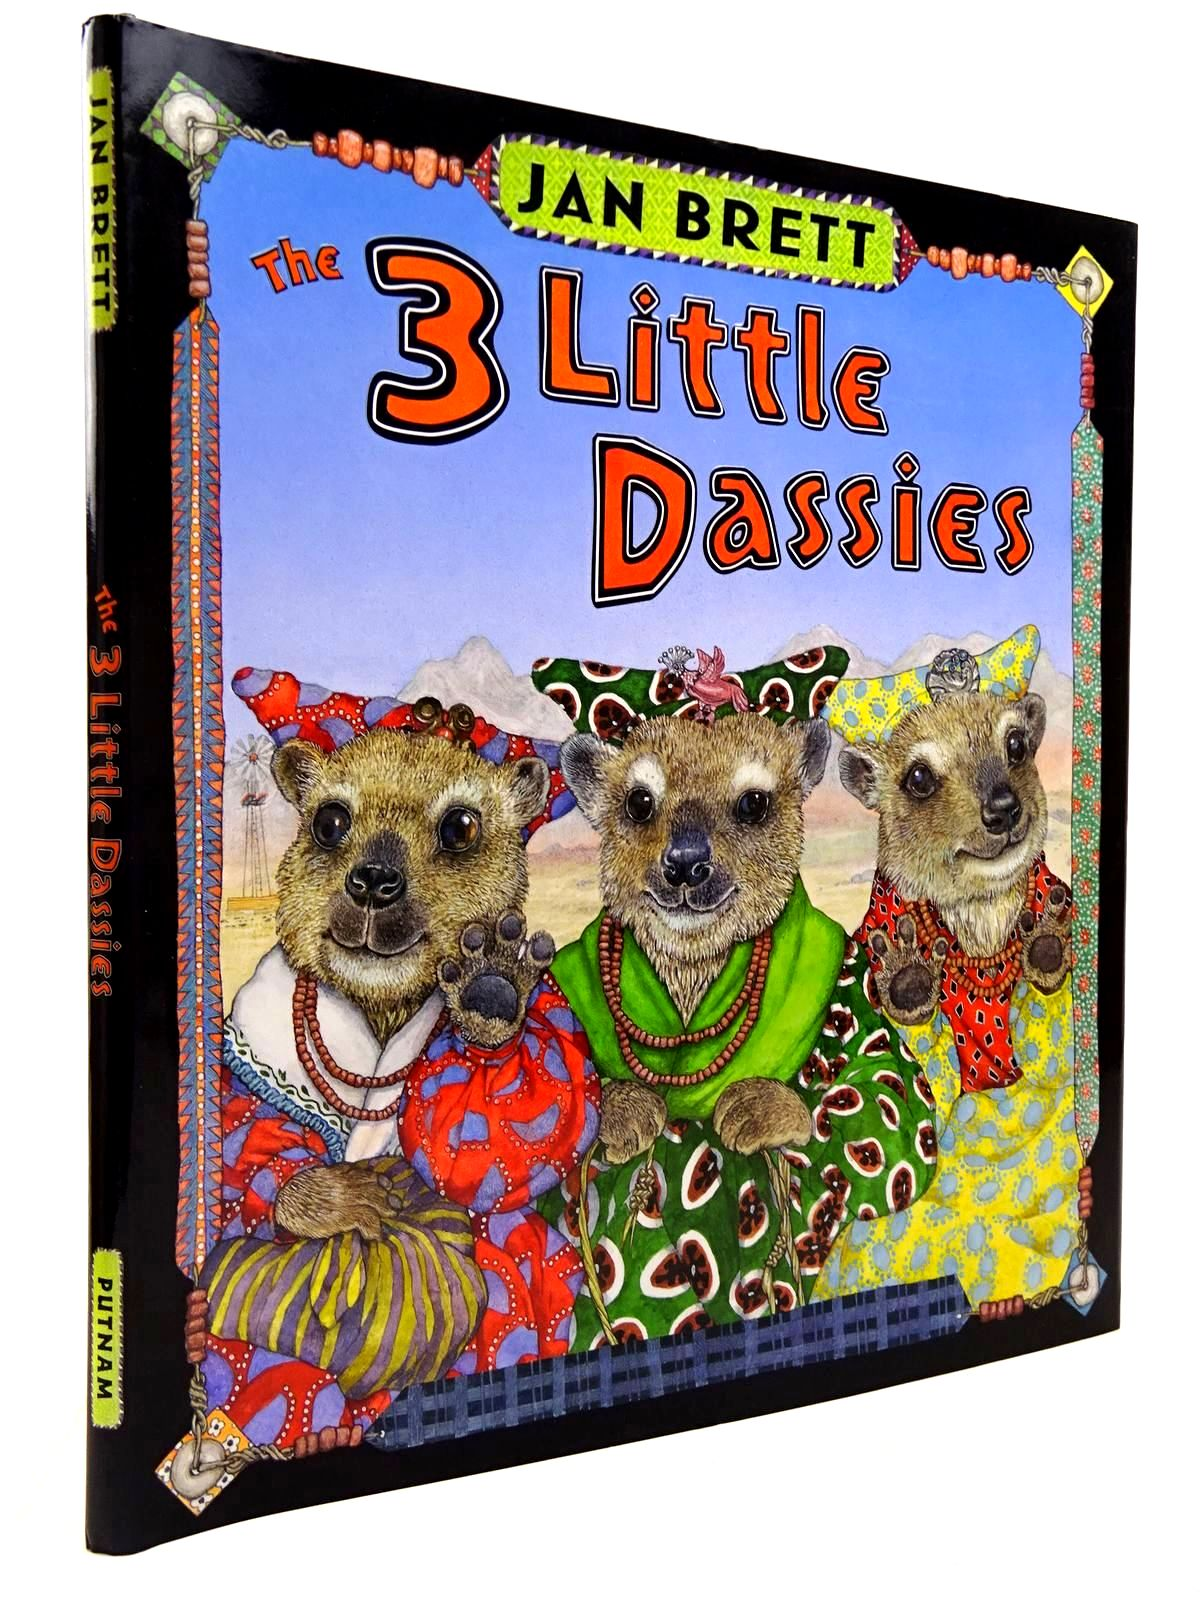 Photo of THE 3 LITTLE DASSIES written by Brett, Jan illustrated by Brett, Jan published by G.P. Putnam's Sons (STOCK CODE: 2130995)  for sale by Stella & Rose's Books